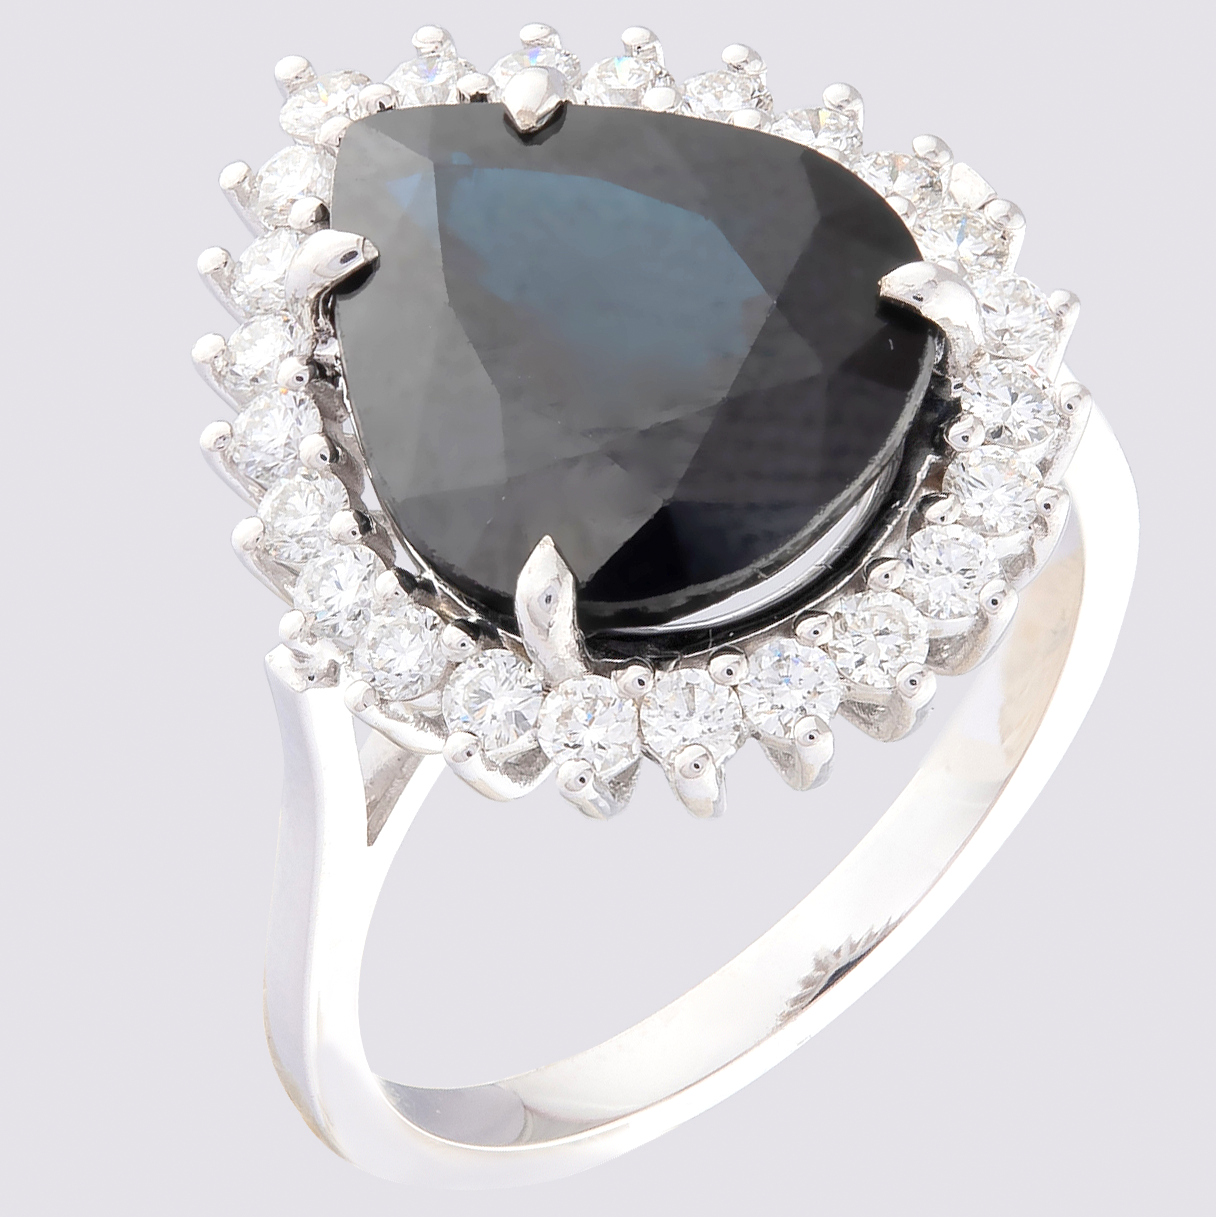 14K White Gold Cluster Ring - 5,75 Ct. Natural Sapphire - 0,60 Ct. Diamond